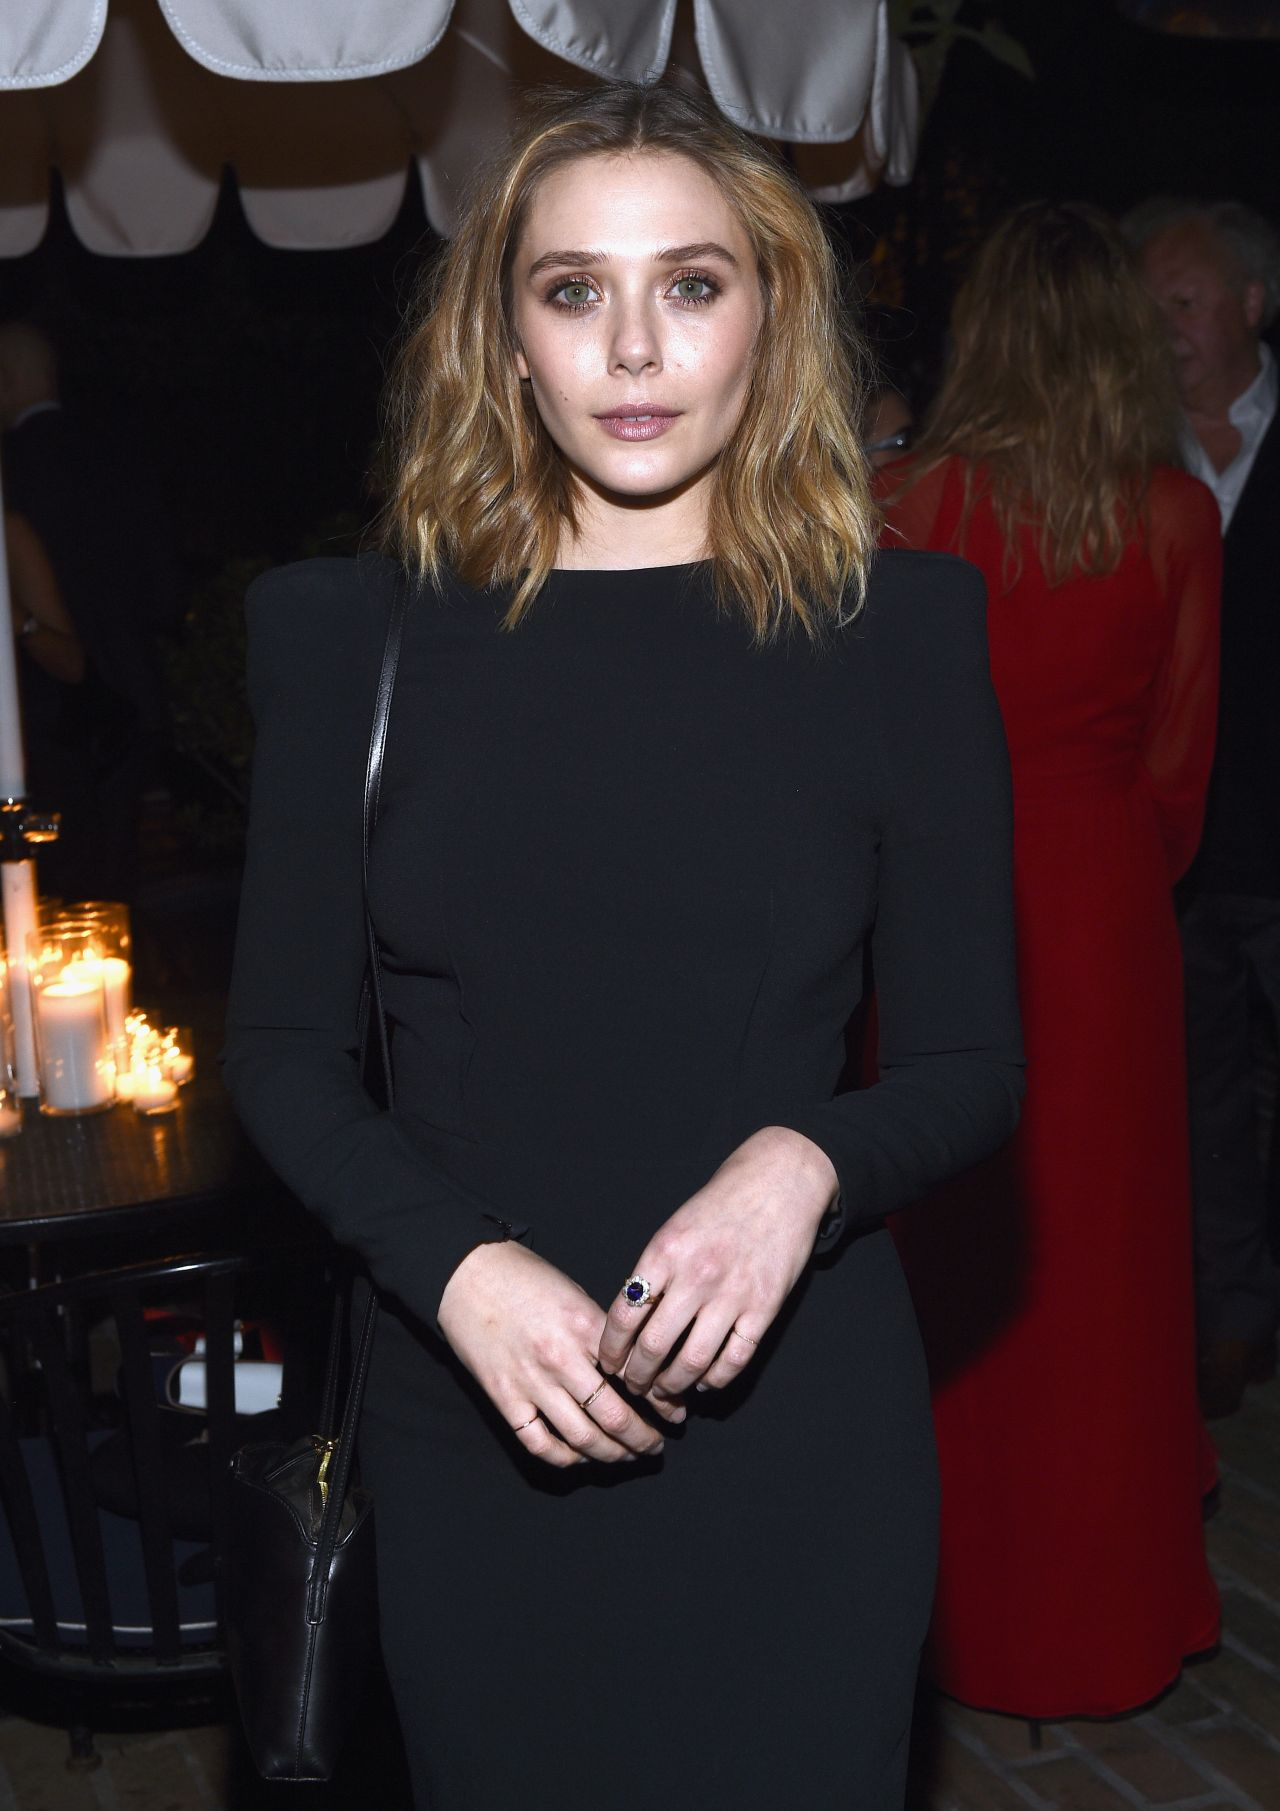 Elizabeth Olsen - Vanity Fair and Barneys New York Dinner Benefit in LA, Feb. 2015